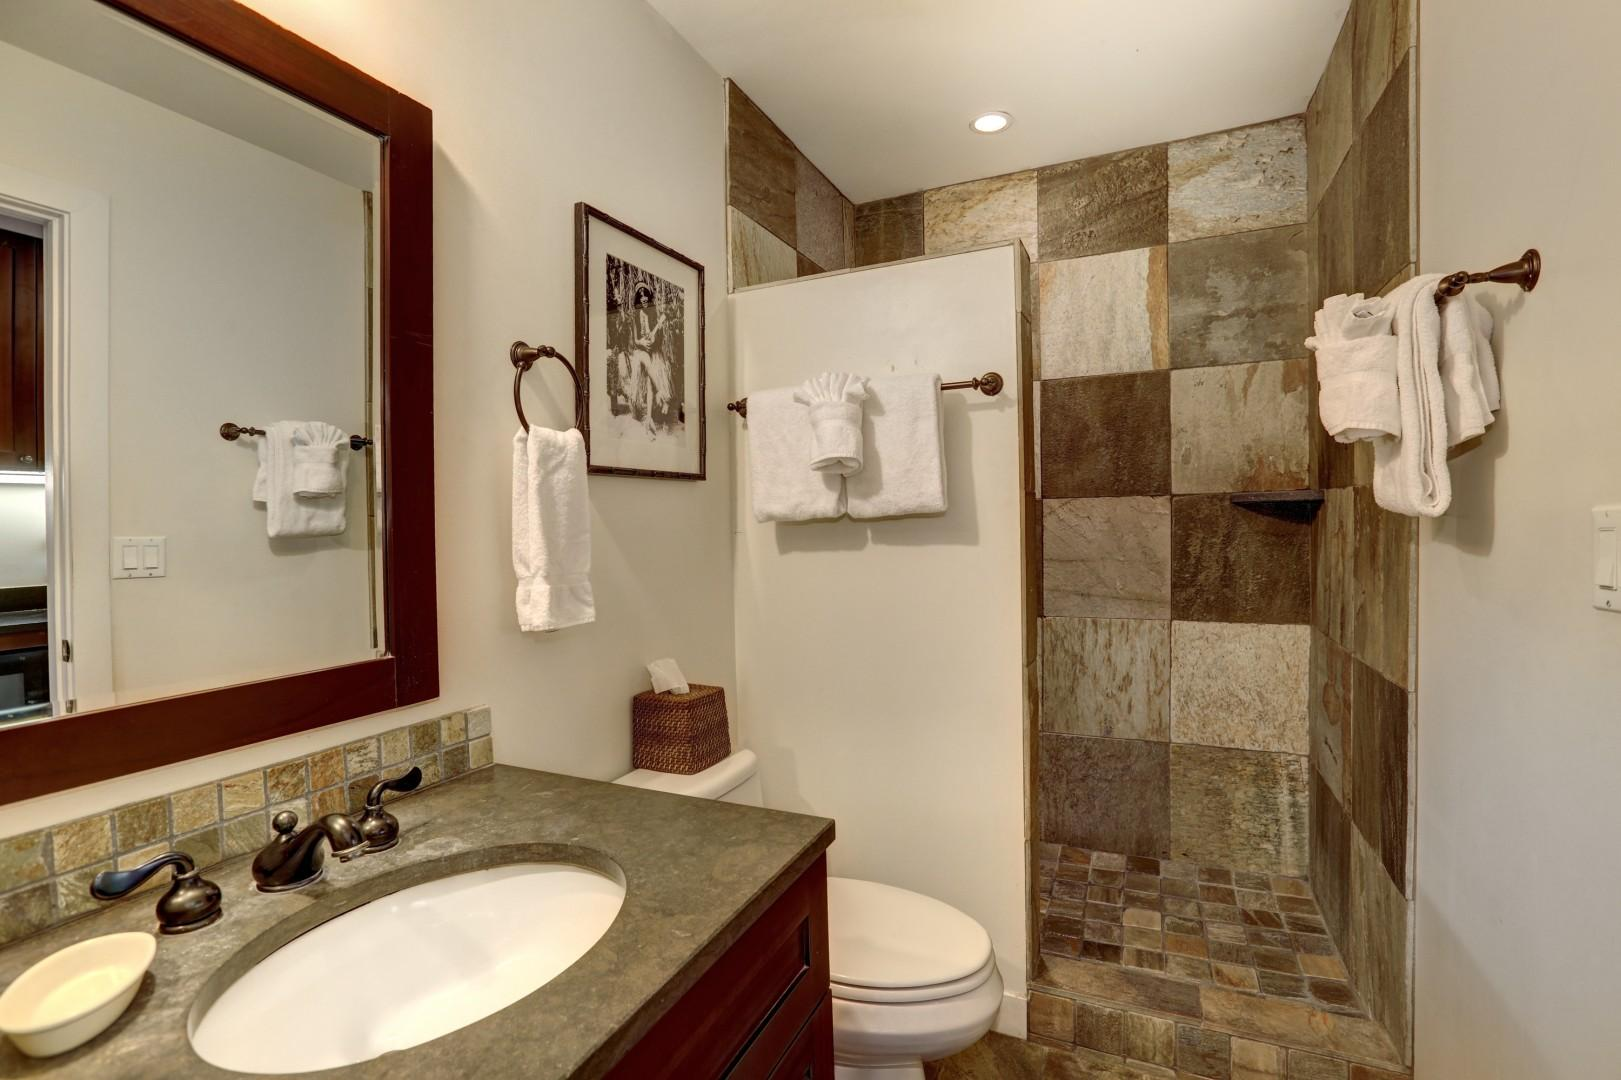 The bathroom includes a large stone-tile shower.